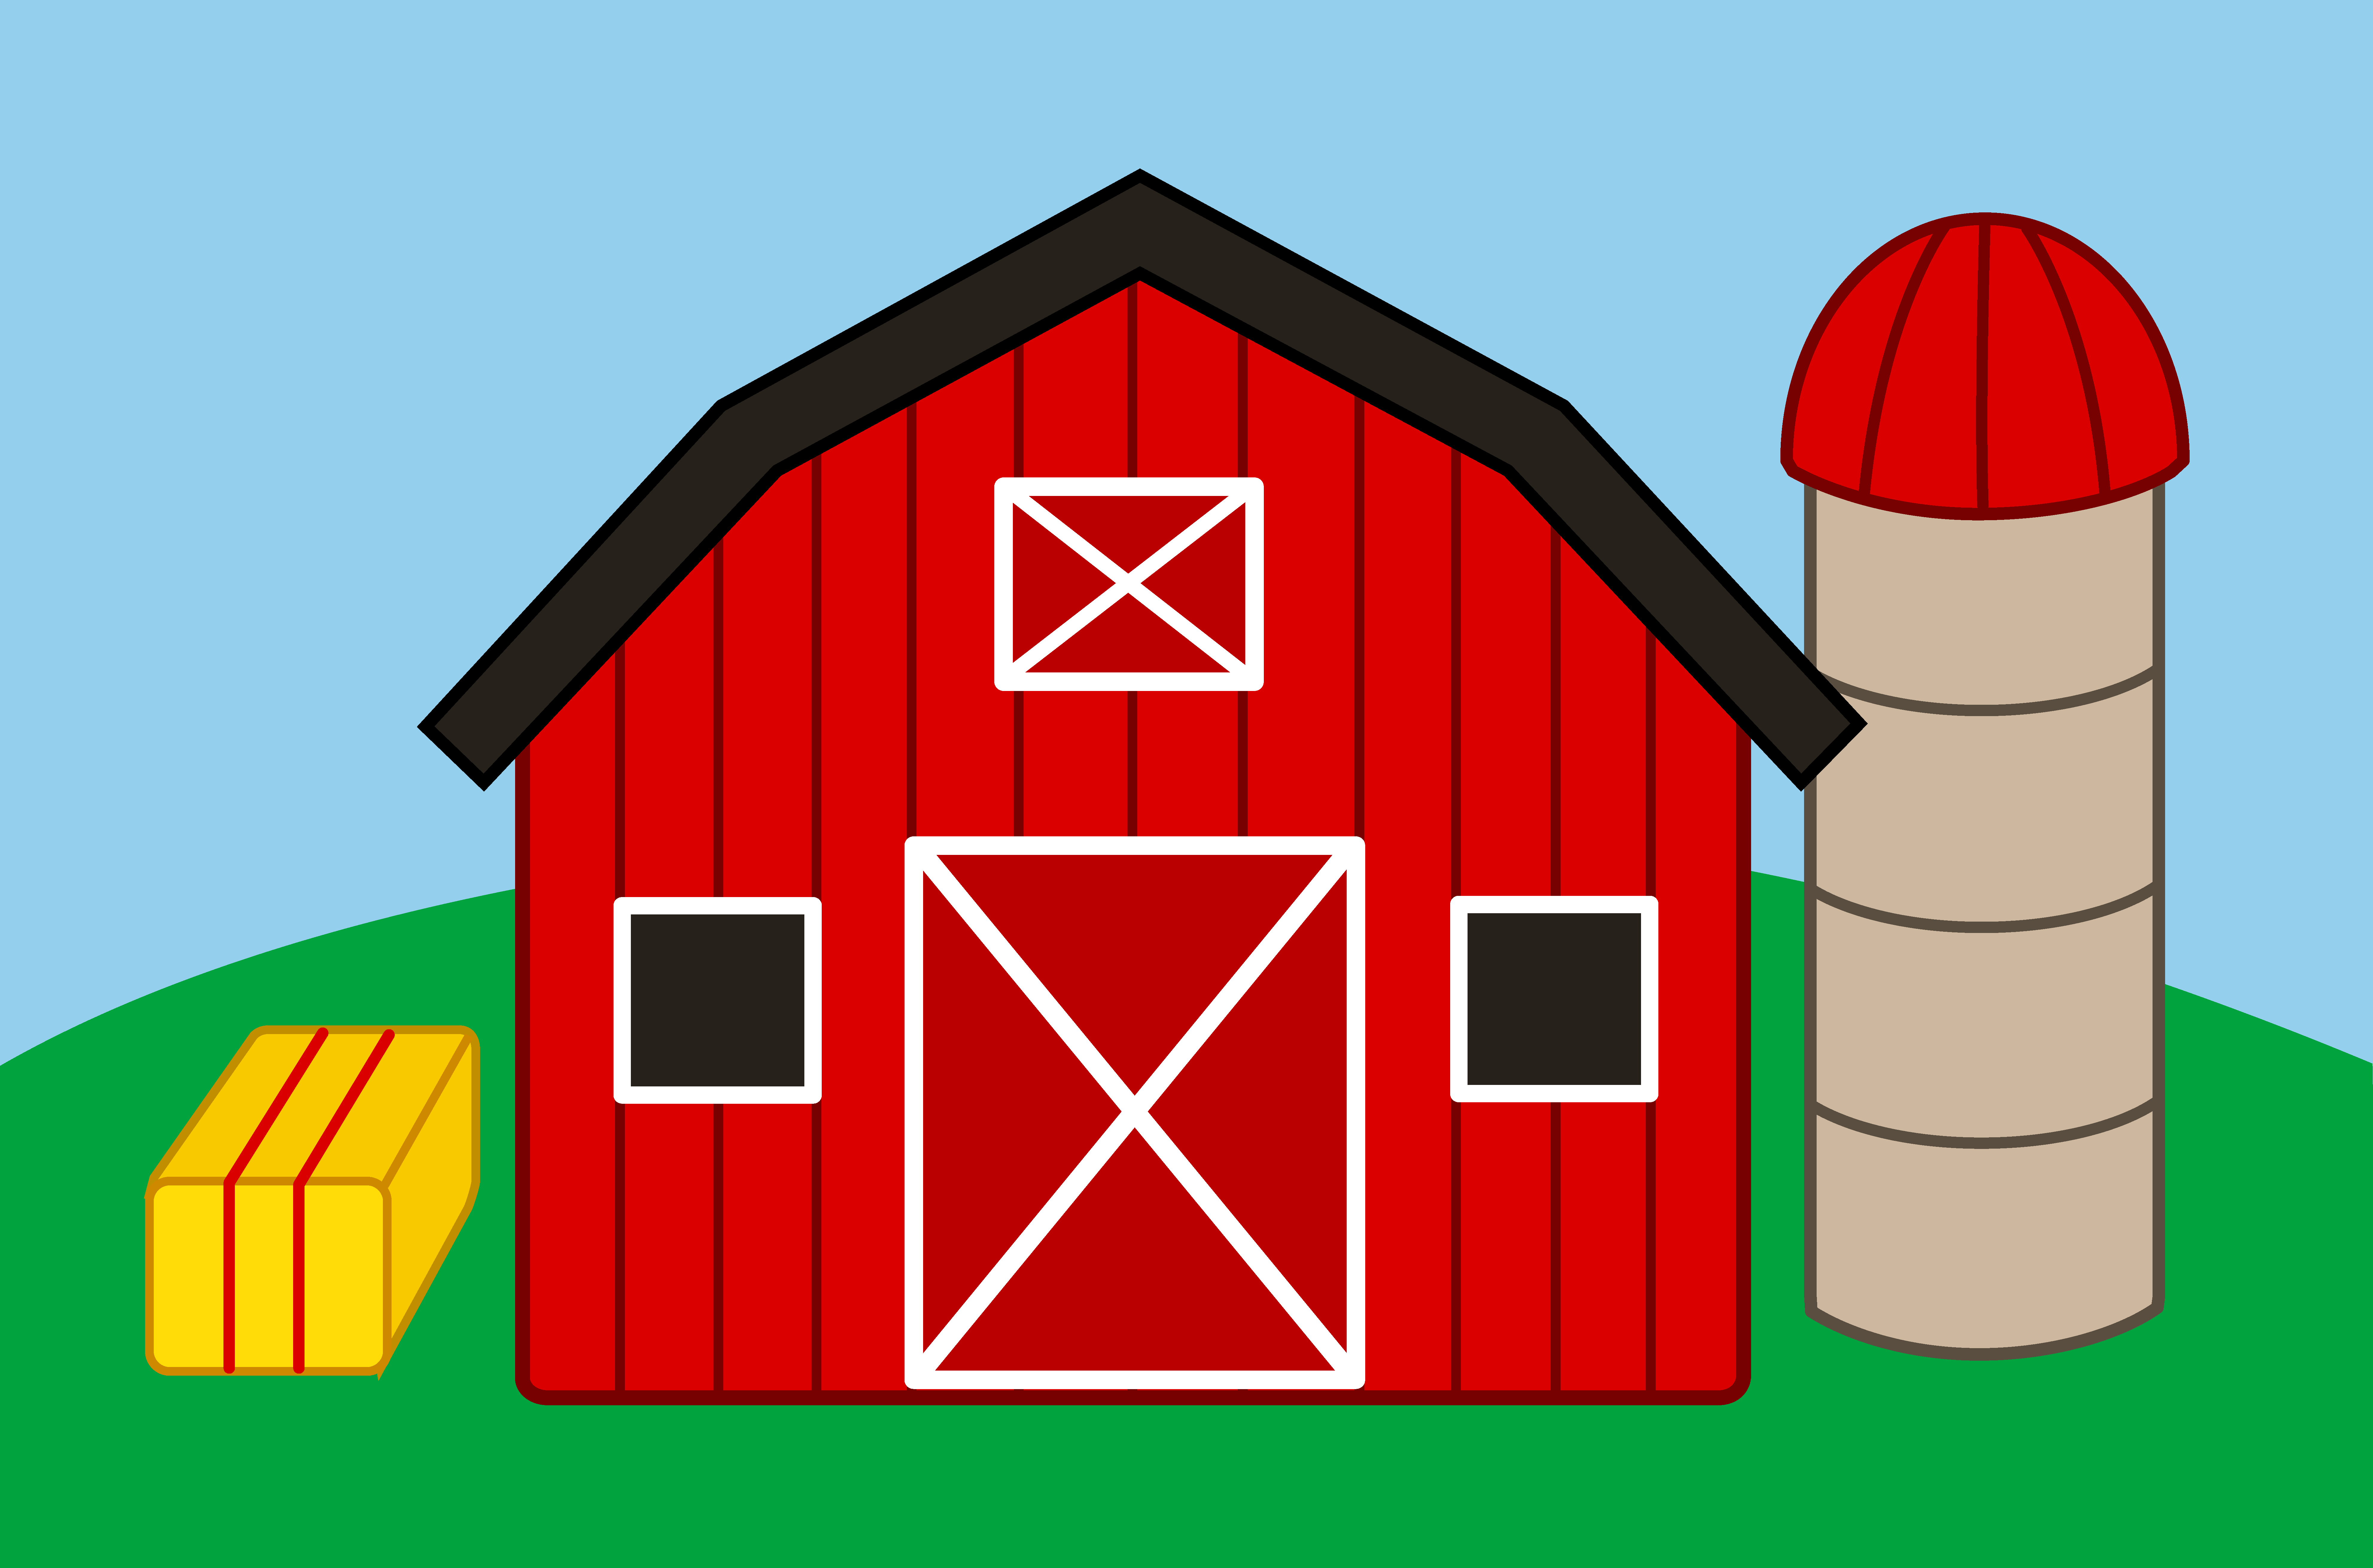 Cute Farm With Barn and Silo - Free Clip Art - Farm House PNG HD - Cartoon Houses PNG HD